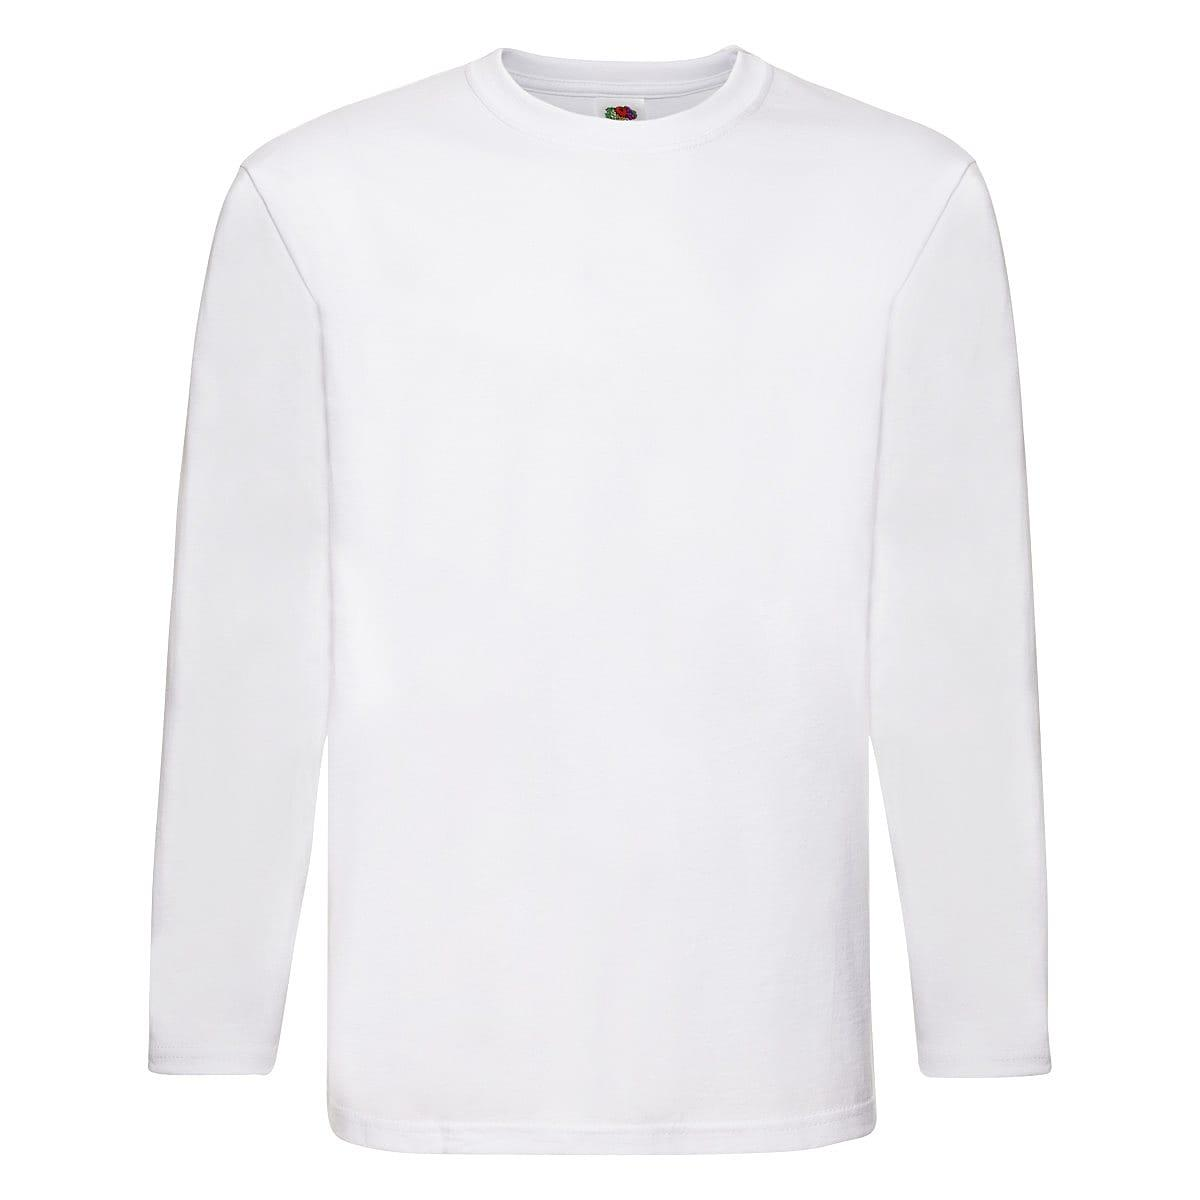 Fruit Of The Loom Super Premium Long-Sleeve T-Shirt in White (Product Code: 61042)